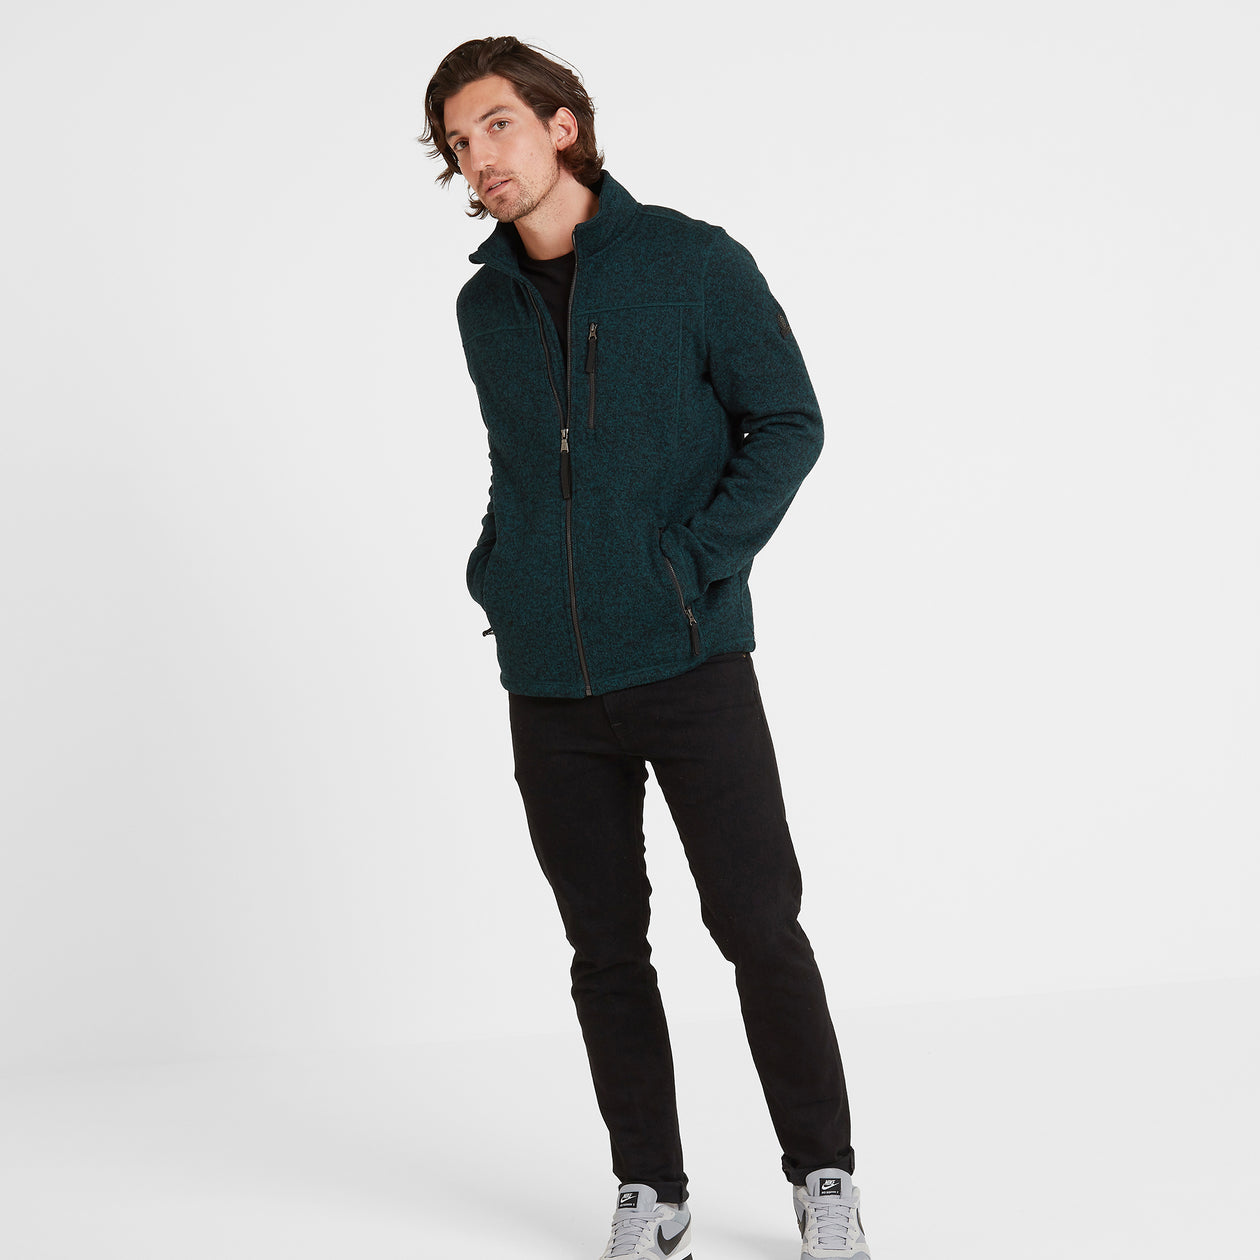 Garton Mens Knitlook Fleece Jacket - Forest Marl image 4